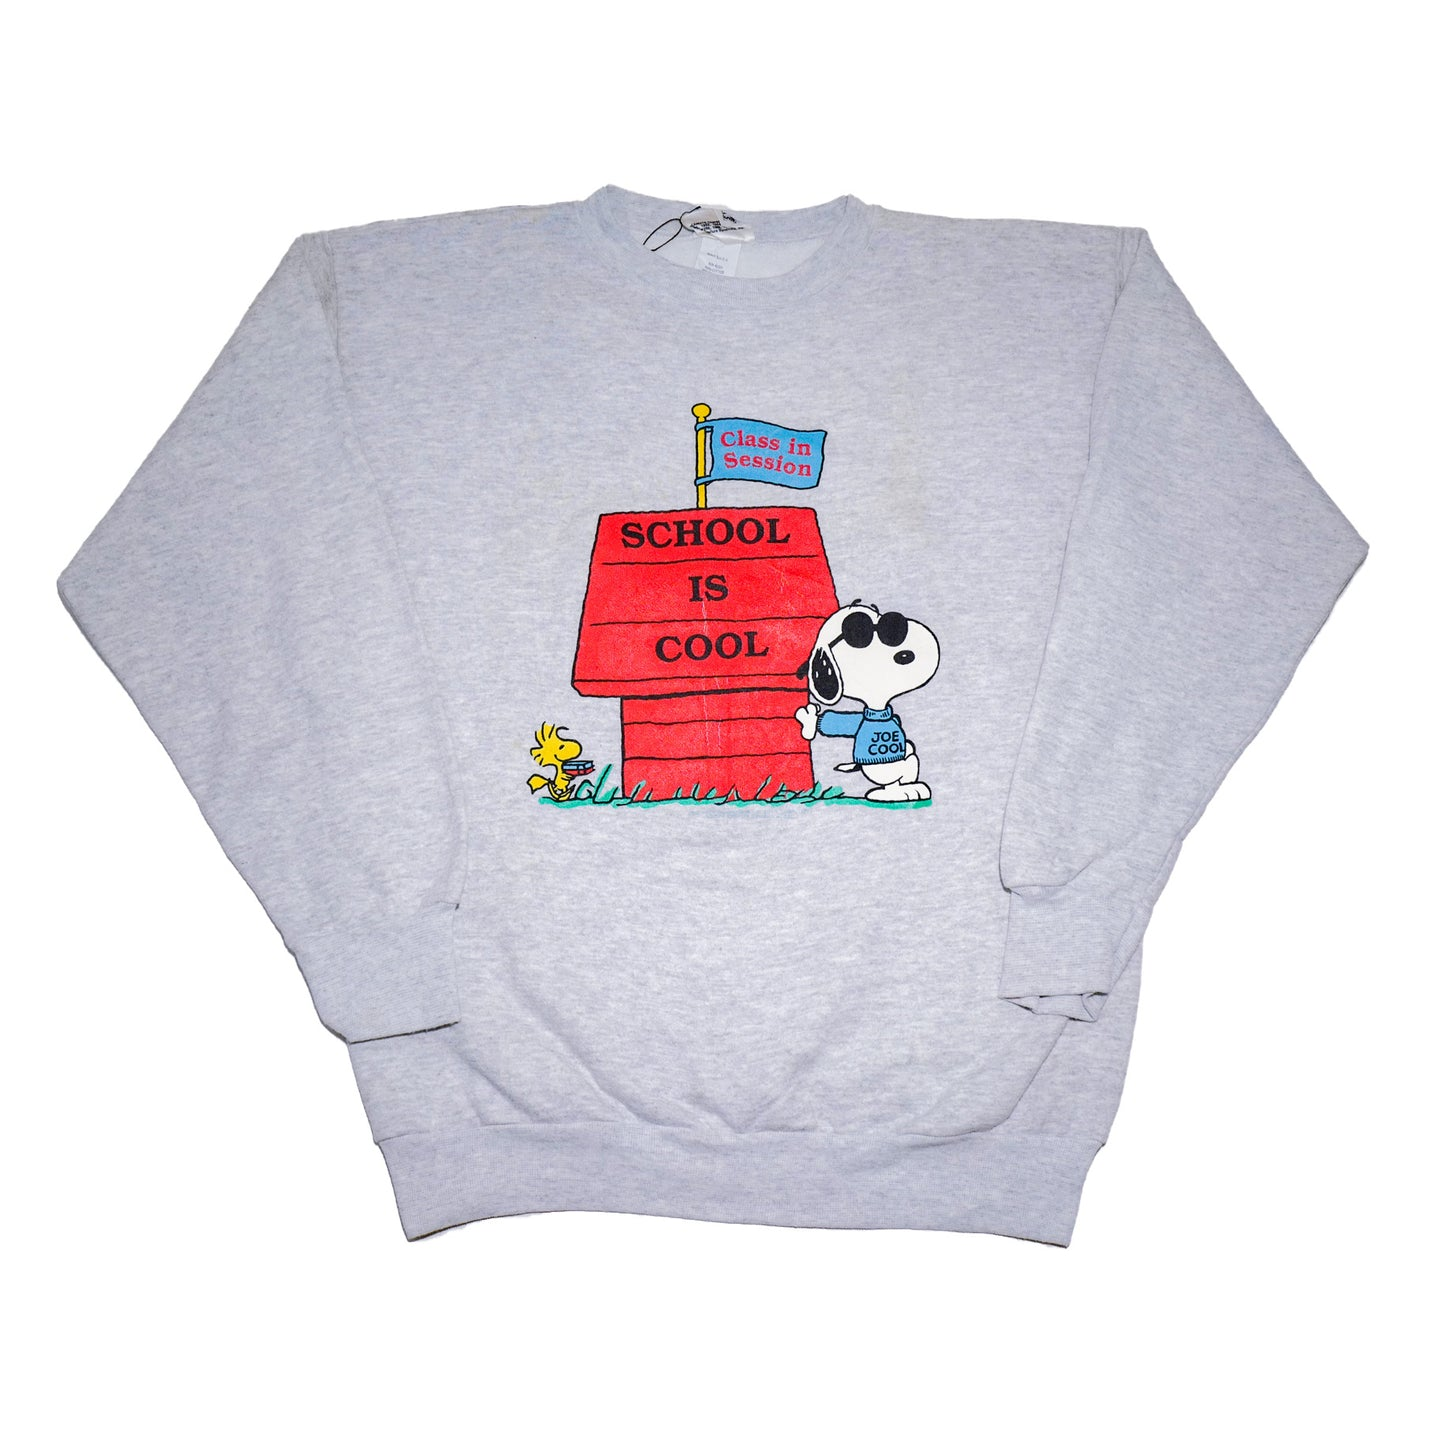 Vintage Snoopy School Is Cool Sweatshirt